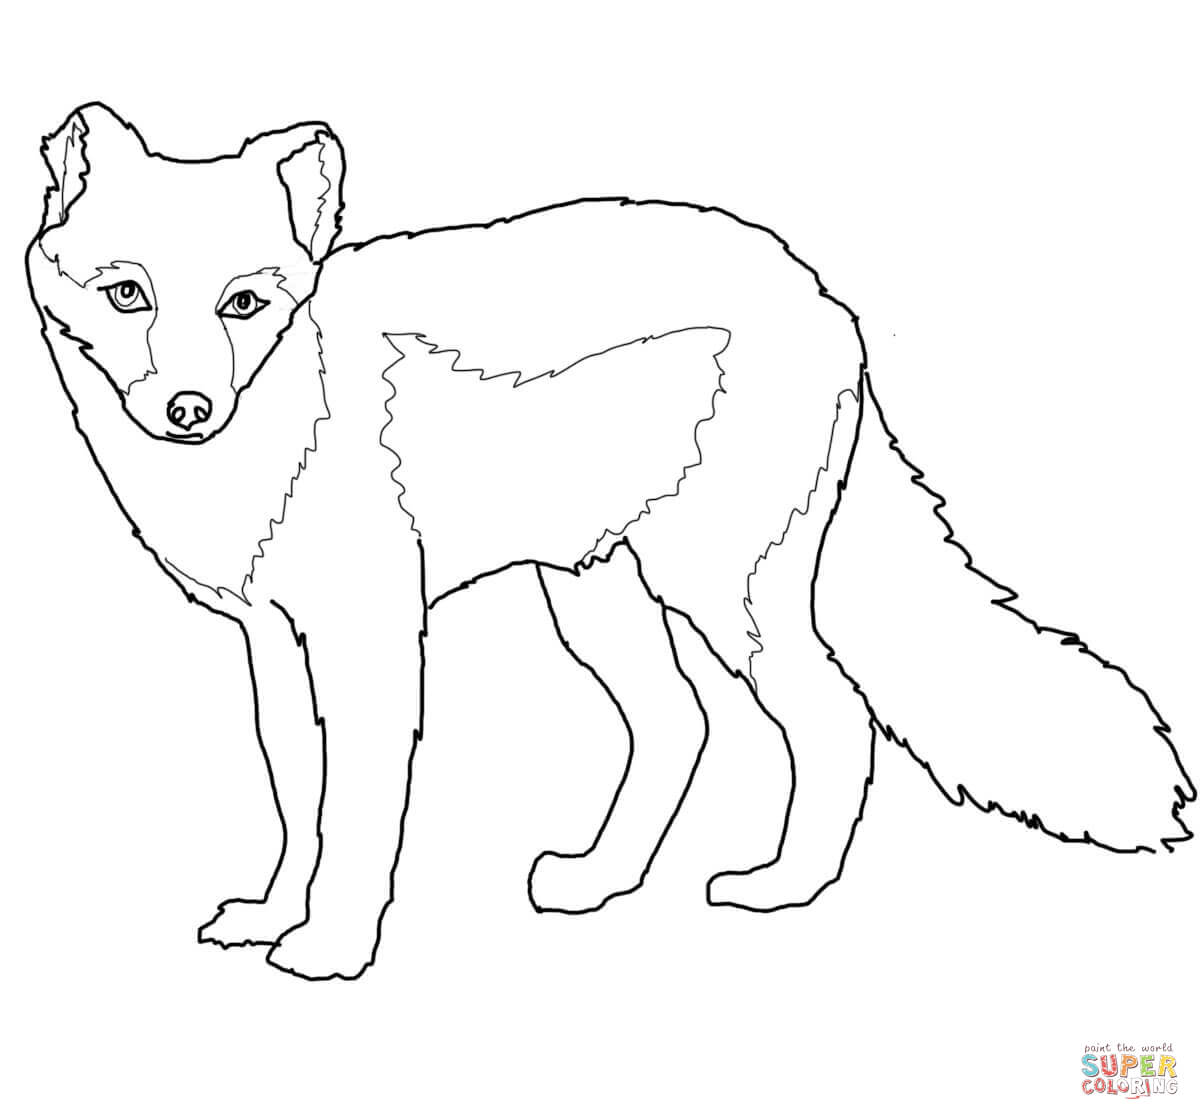 Arctic Fox Summer Coat Coloring Page